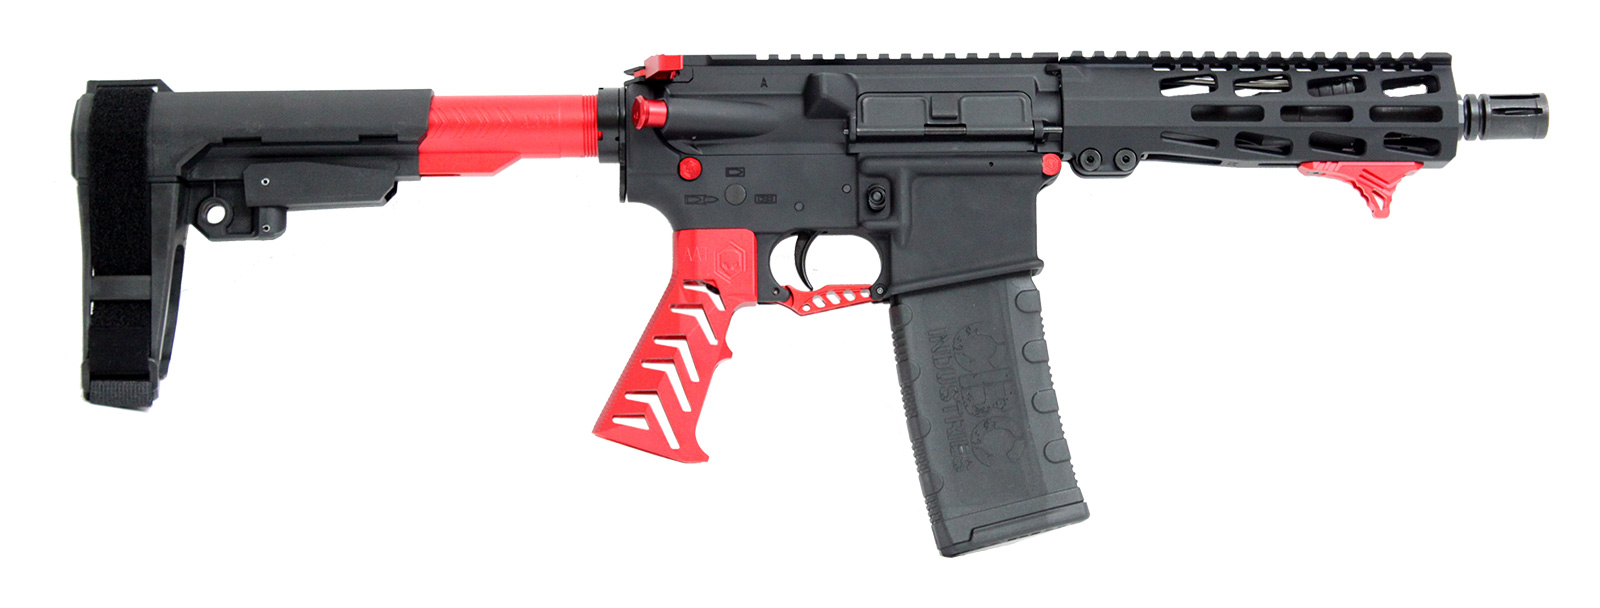 cbc-ps2-forged-aluminum-ar-pistol-alien-red-223-wylde-7-5″-barrel-m-lok-rail-sba3-brace